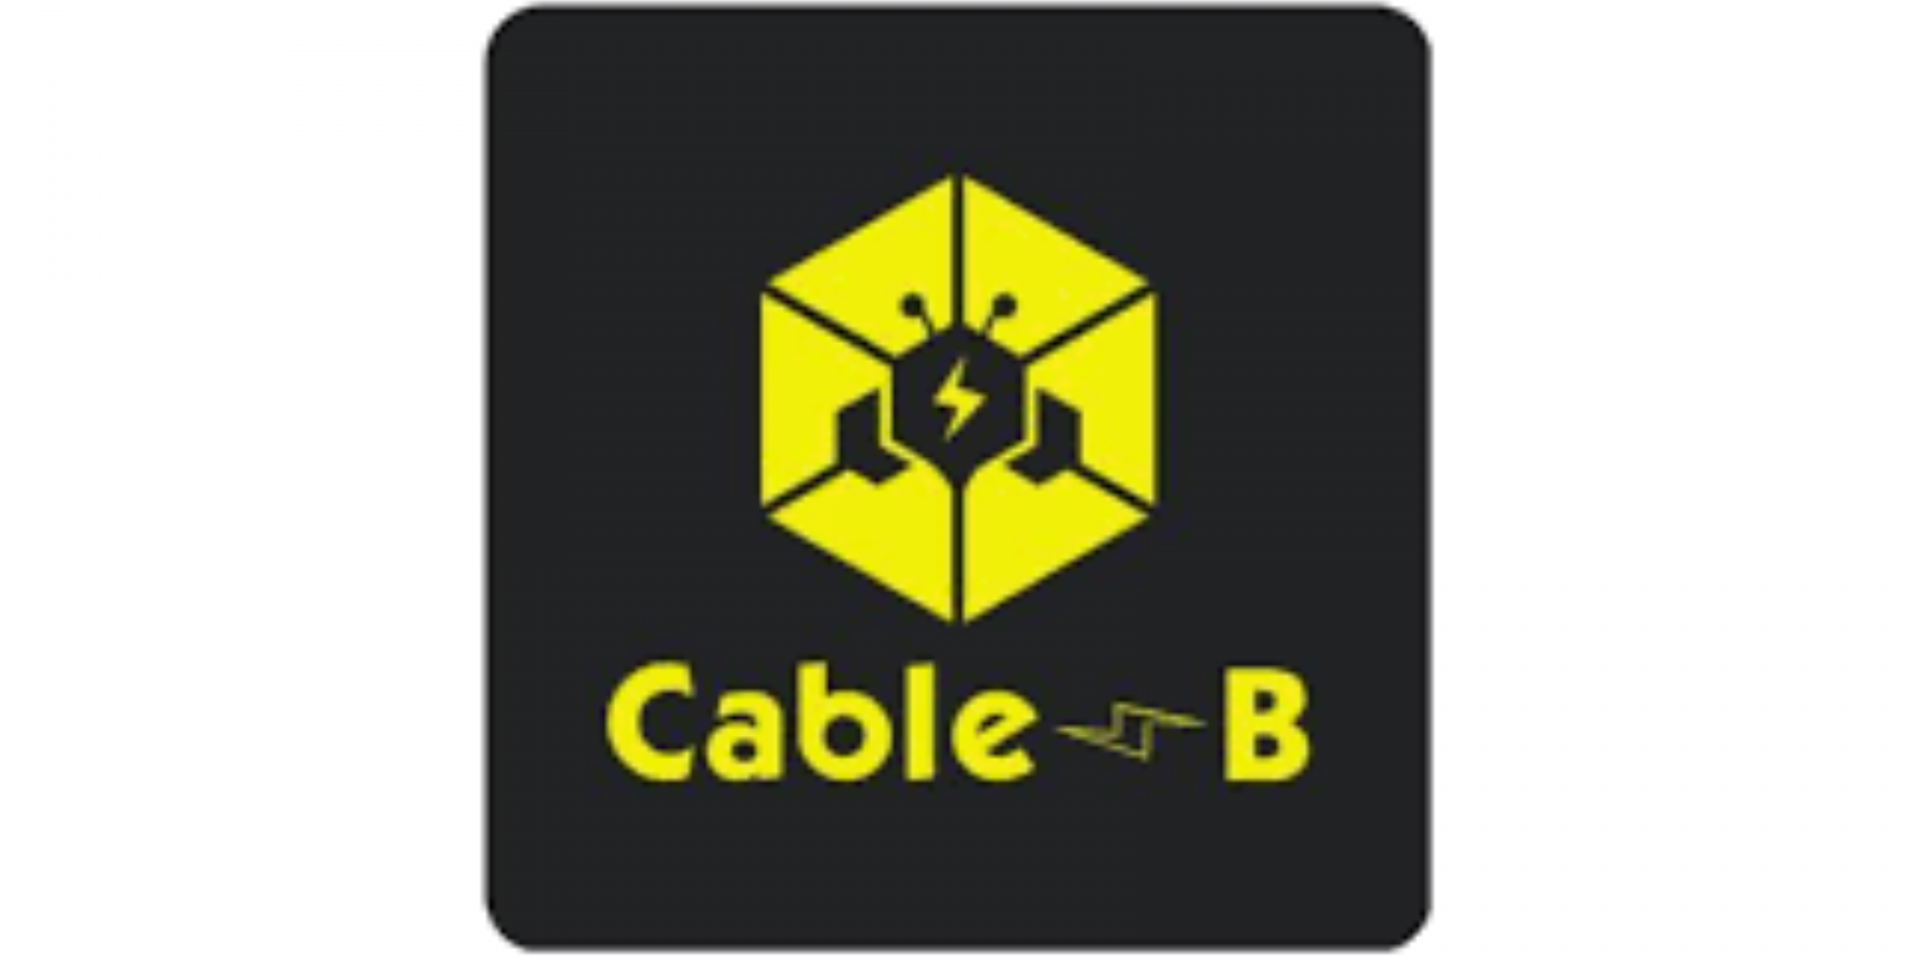 Cable-B